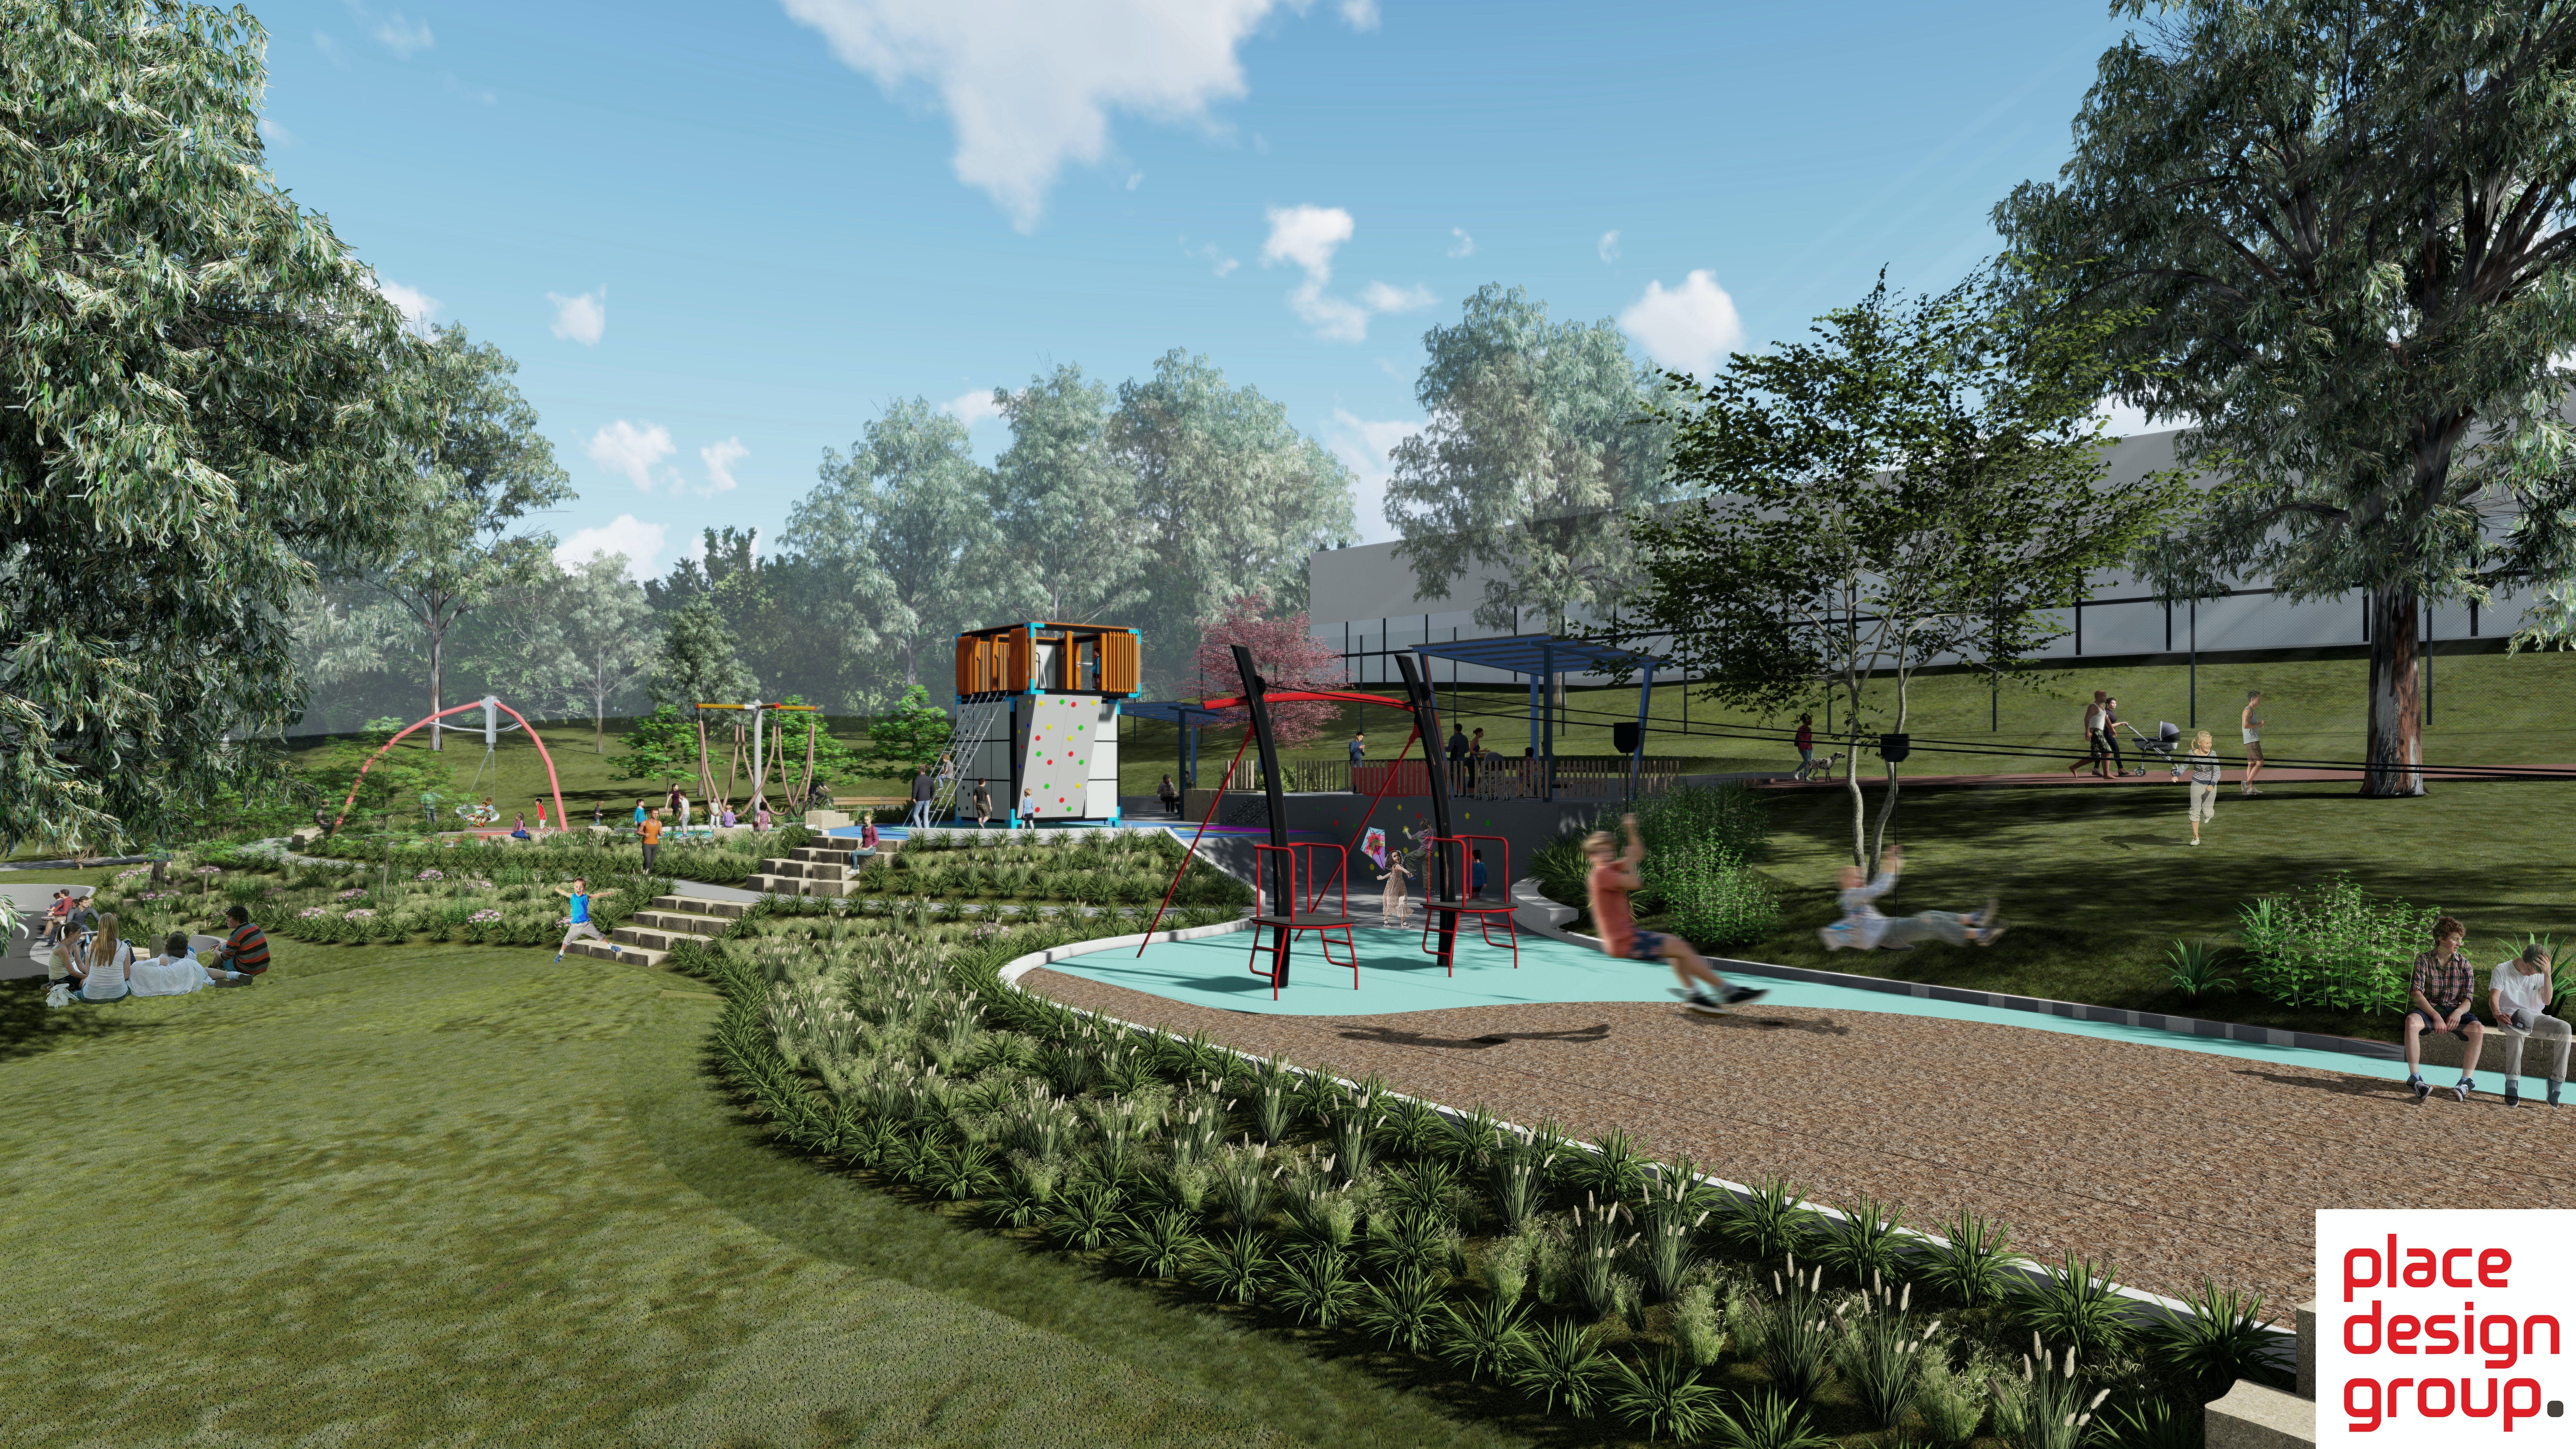 Proposed new play space at Buttenshaw Park, Springwood, featuring a double flying fox, group swing, and climbing structure.